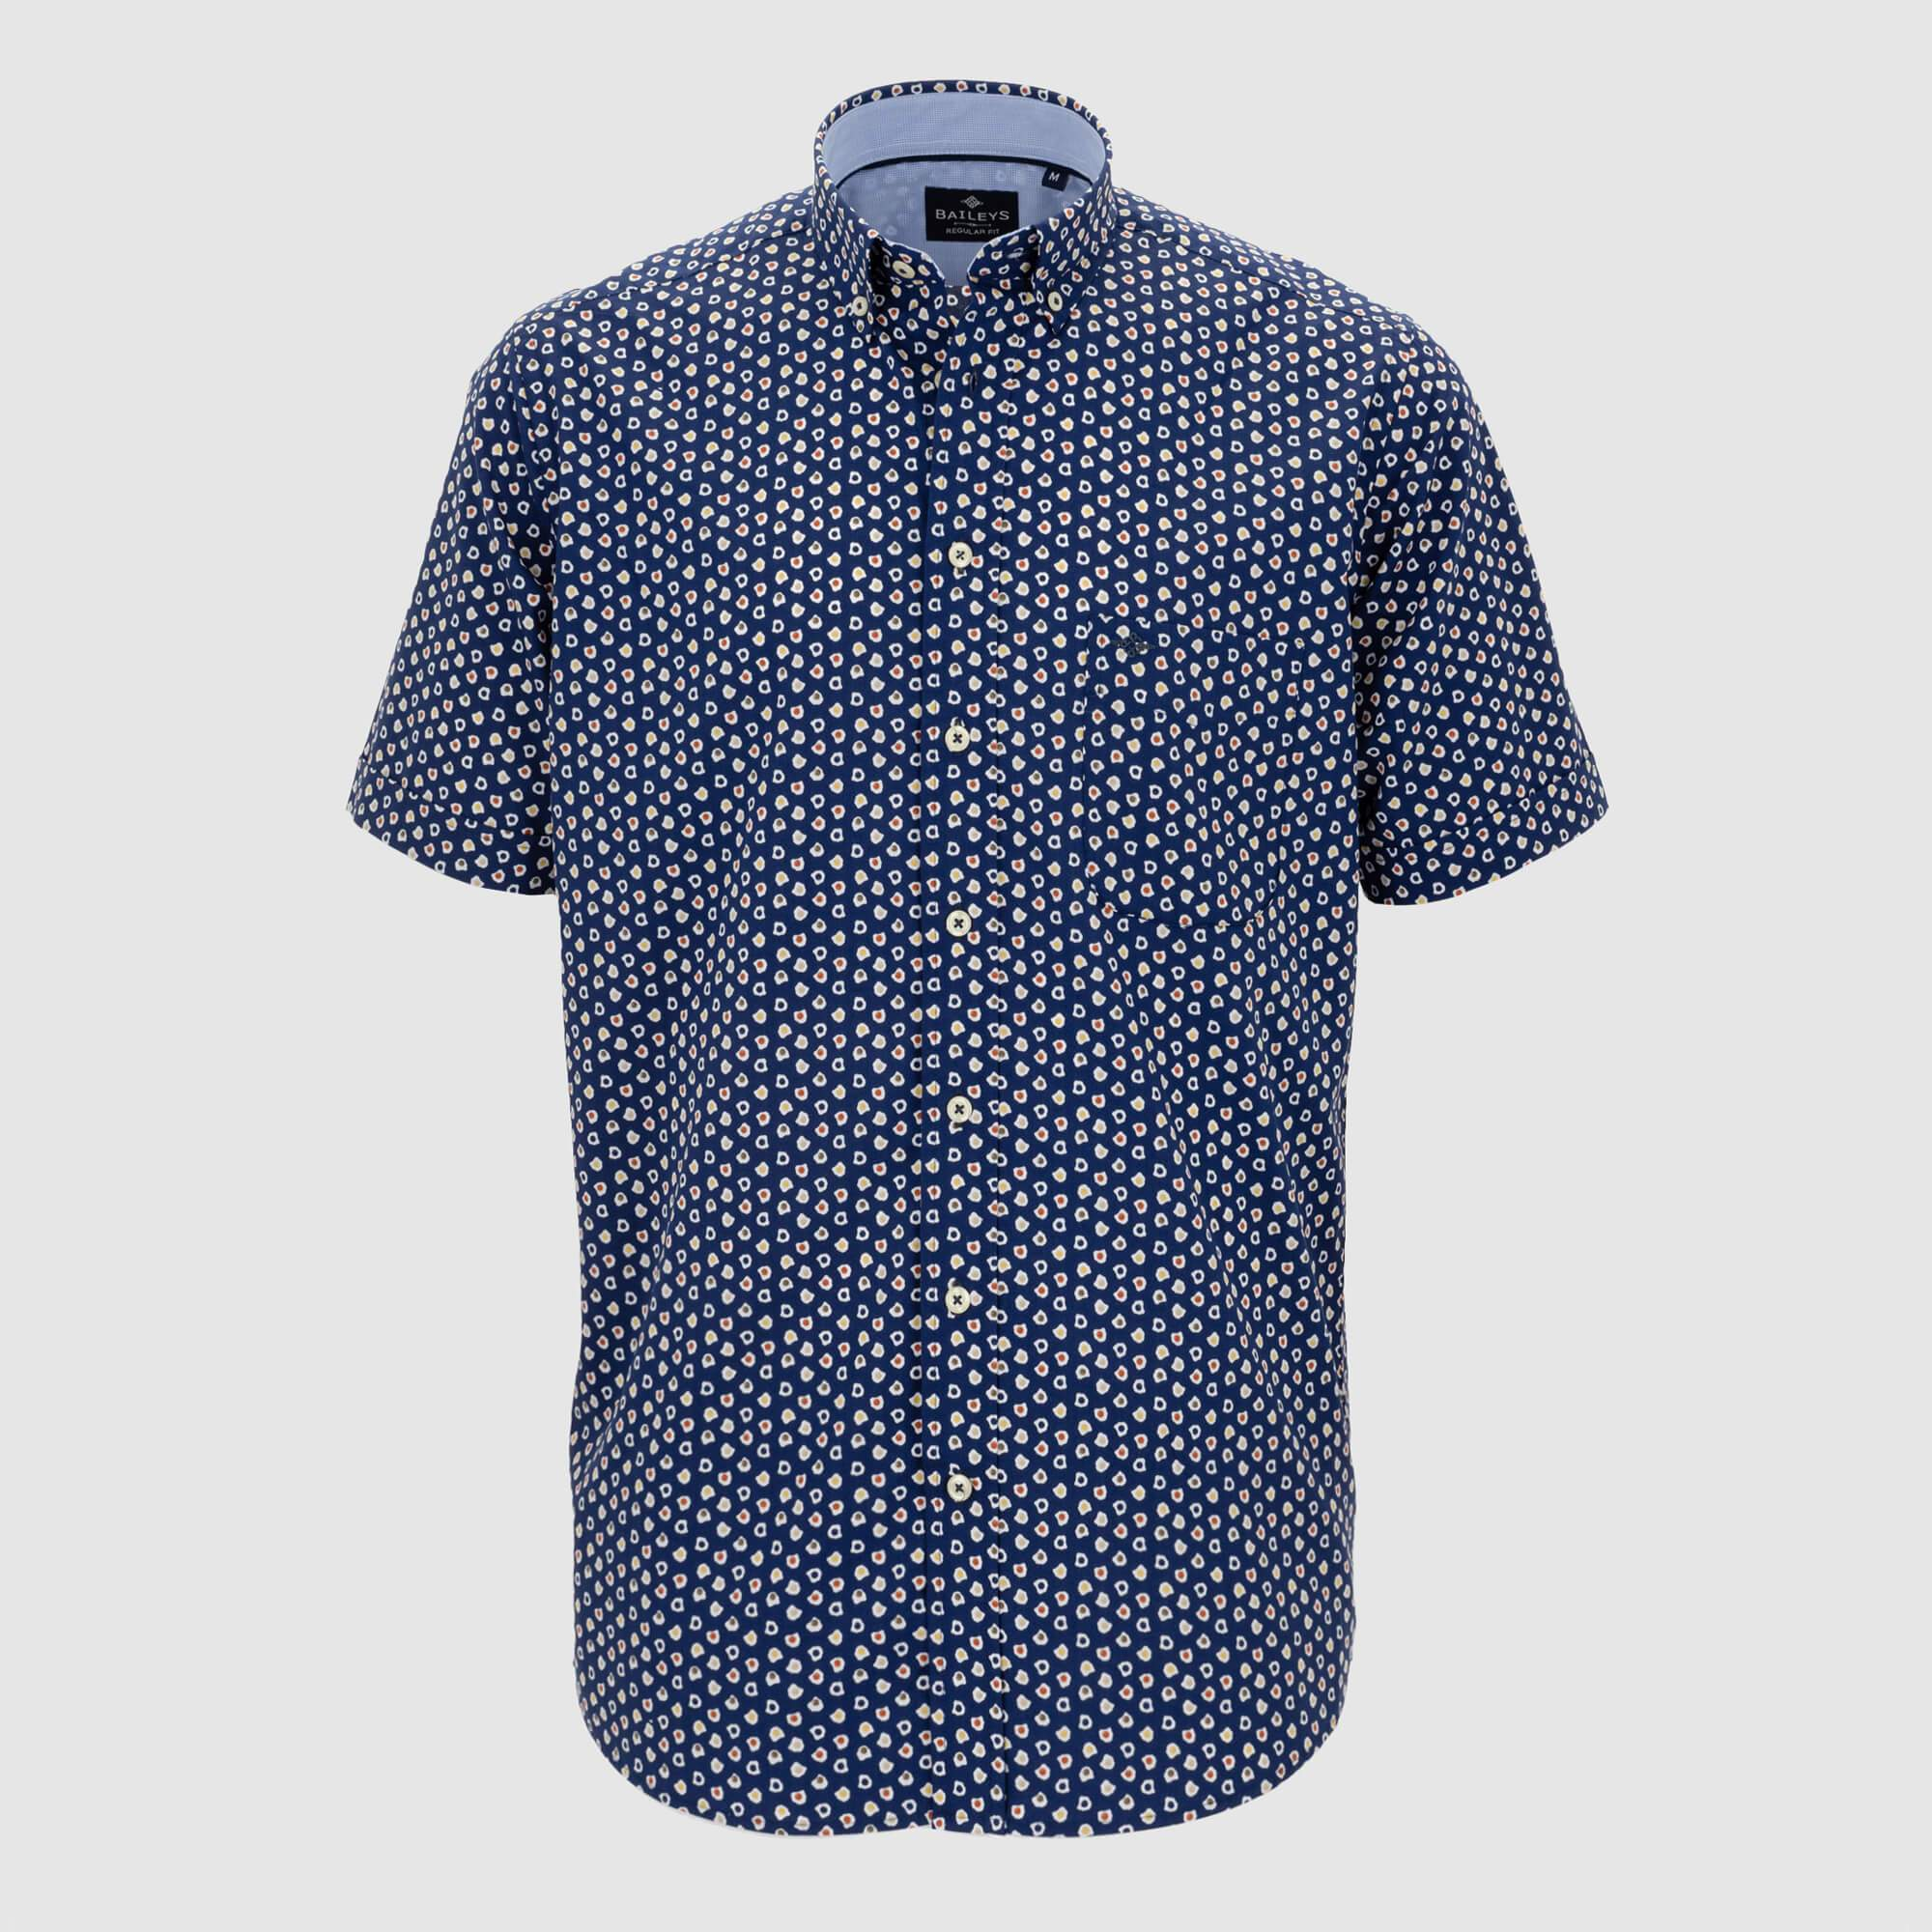 Camisa estampada manga corta regular fit 106674